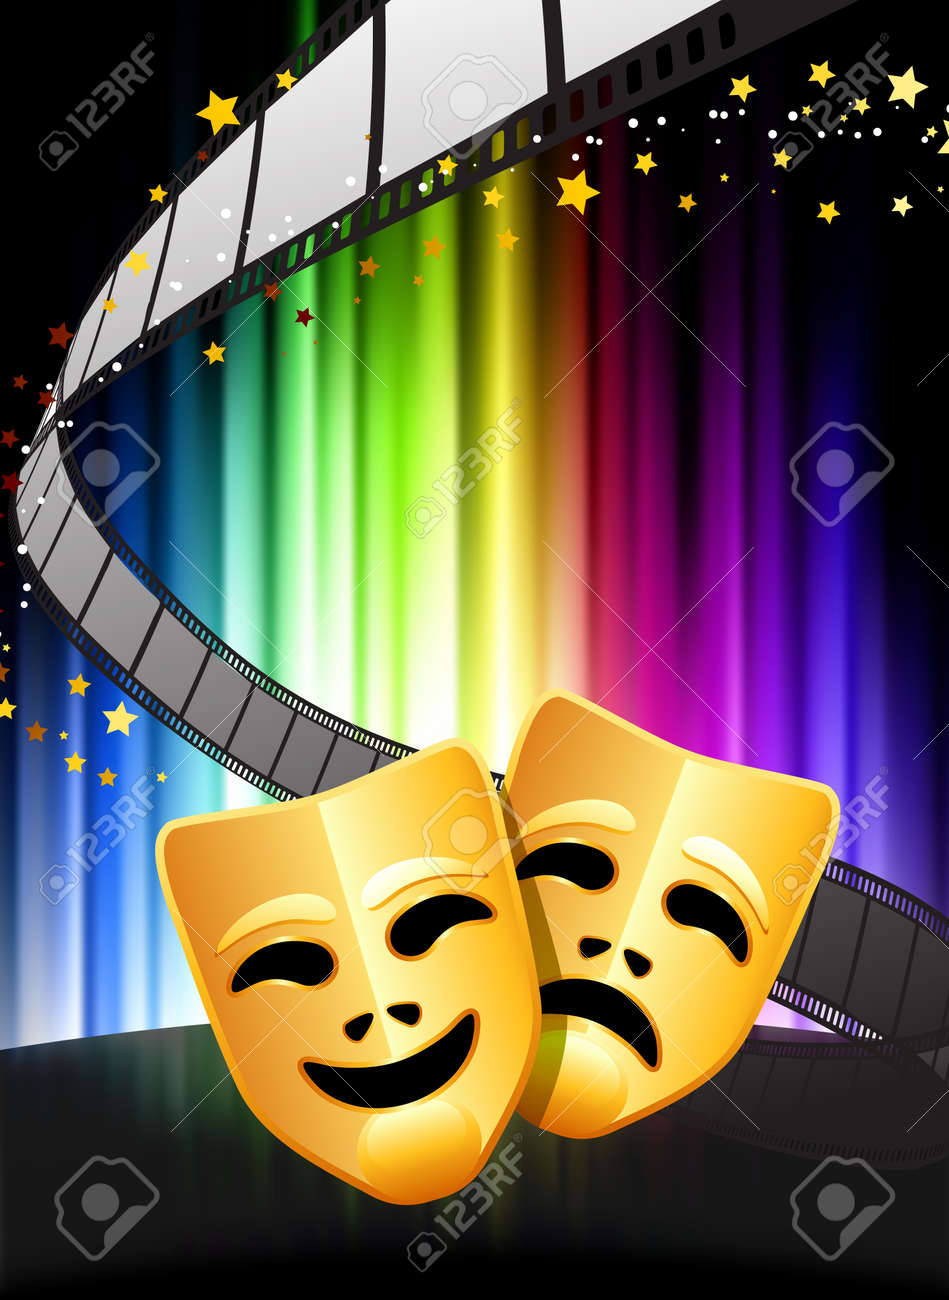 Comedy and Tragedy Masks on Abstract Spectrum Background Stock Vector - 22412111